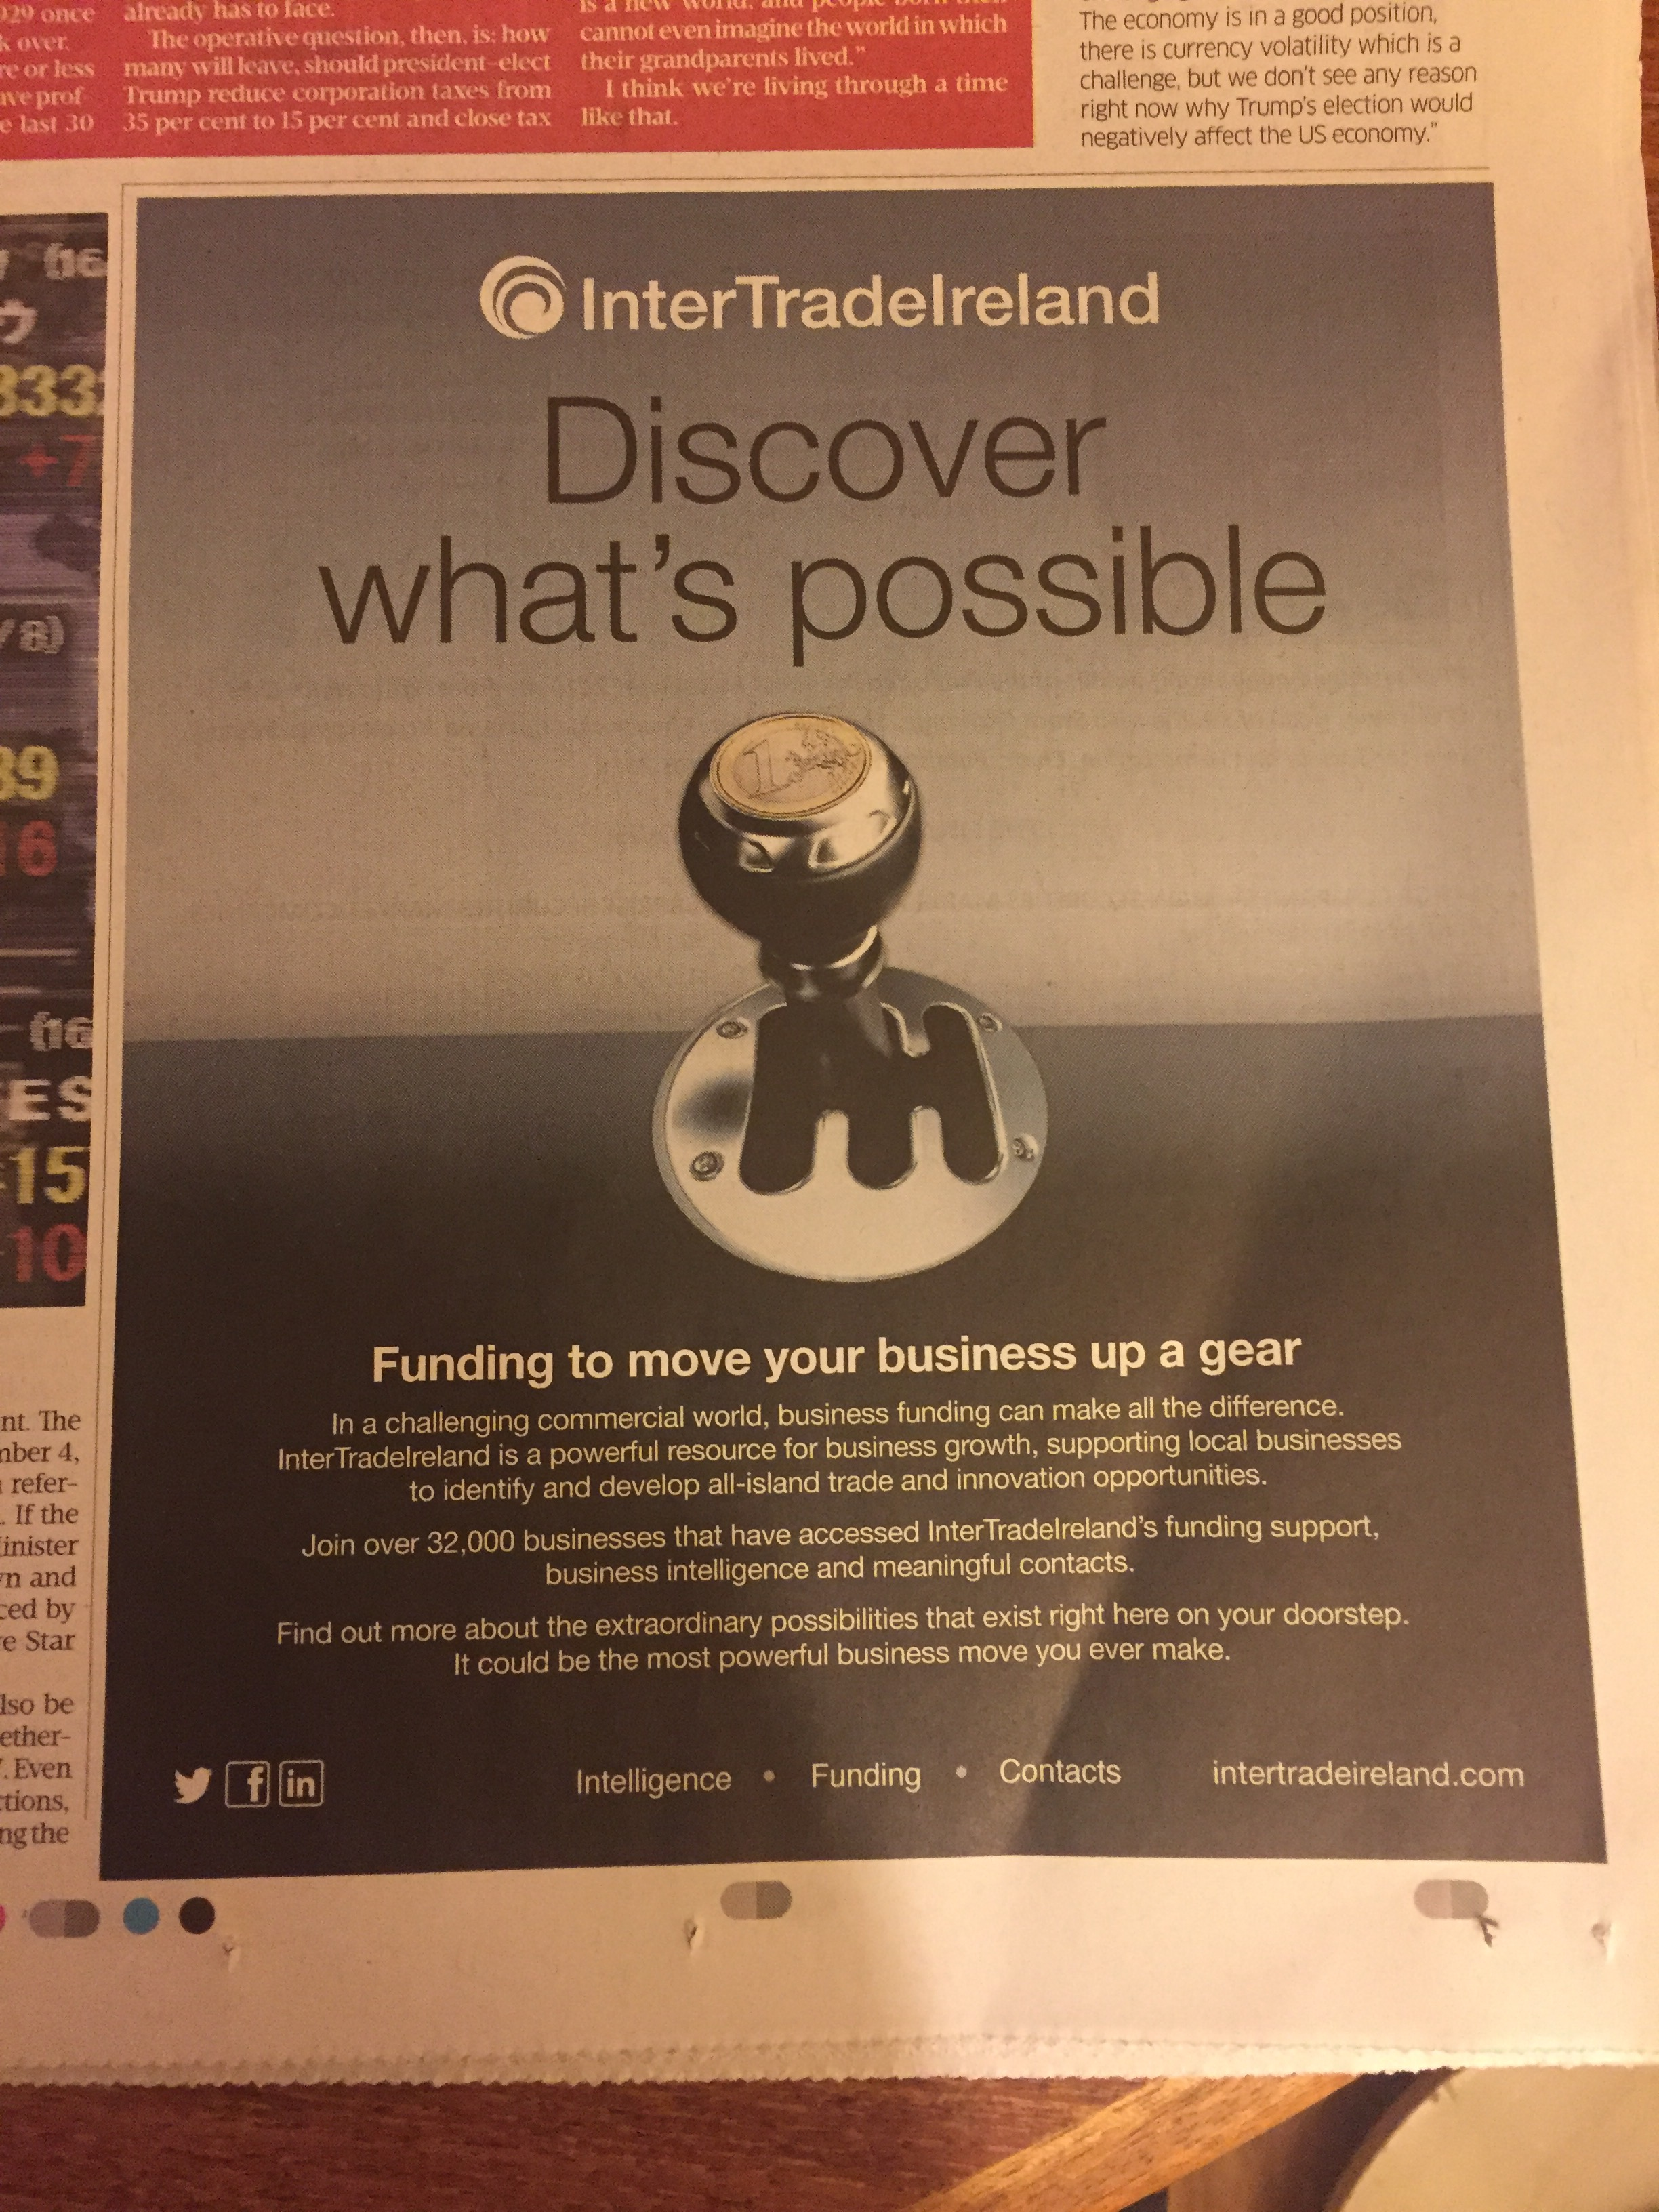 InterTradeIreland – Discover what's possible. Funding to move your business up a gear.